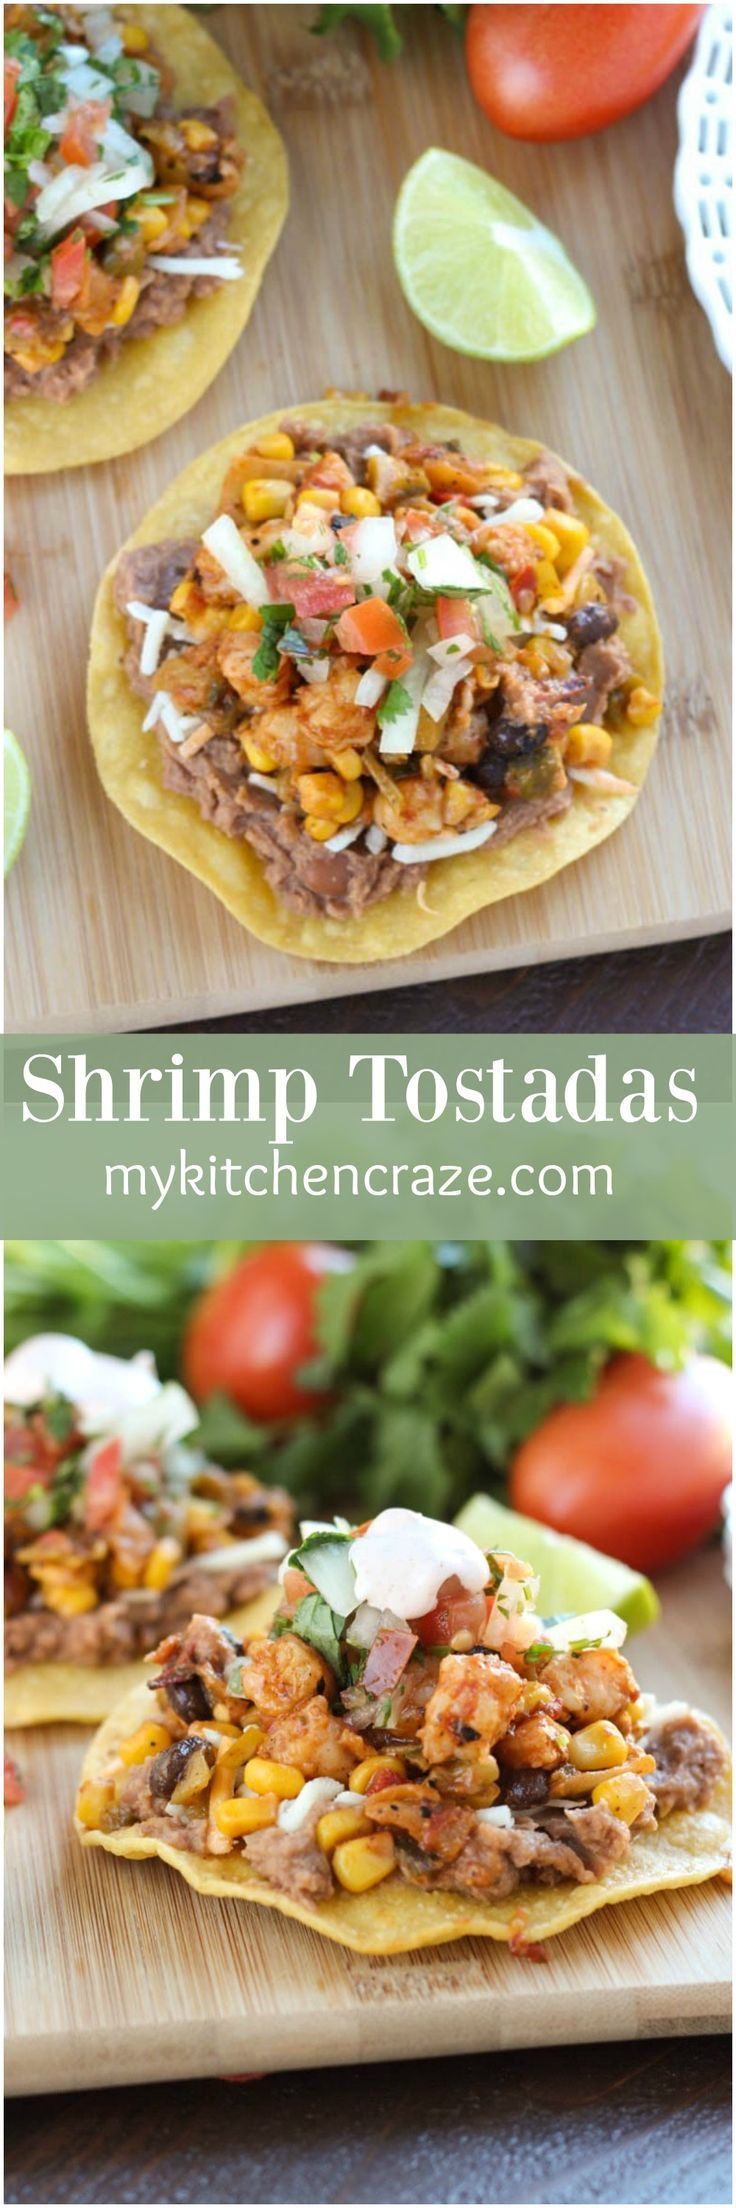 Shrimp Tostadas ~ mykitchencraze.com ~ Enjoy these delicious and scrumptious Shrimp Tostadas in your home. Filled with all sorts of veggies and delicious shrimp. These tostadas will be a winner in your home. #ShrimpItUp [ad]